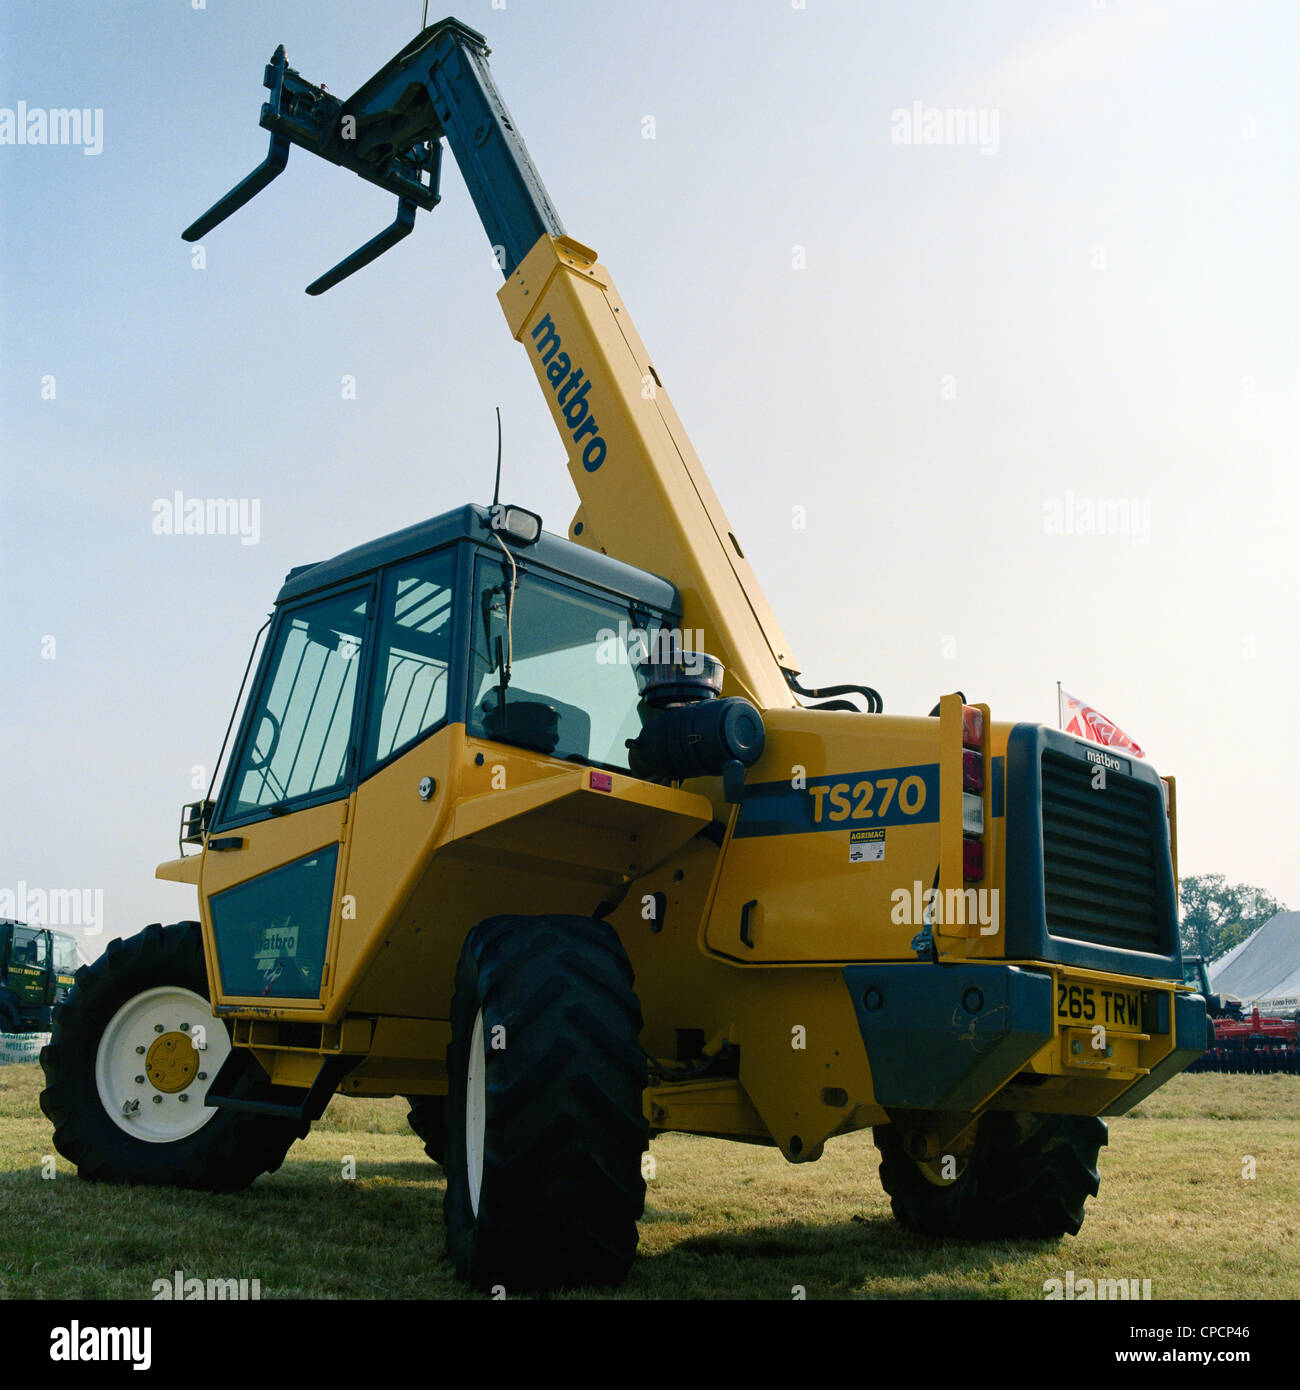 Yellow Matbro T5270 telescopic handler at the Gransden and District Agricultural Show Cambridgeshire England Stock Photo